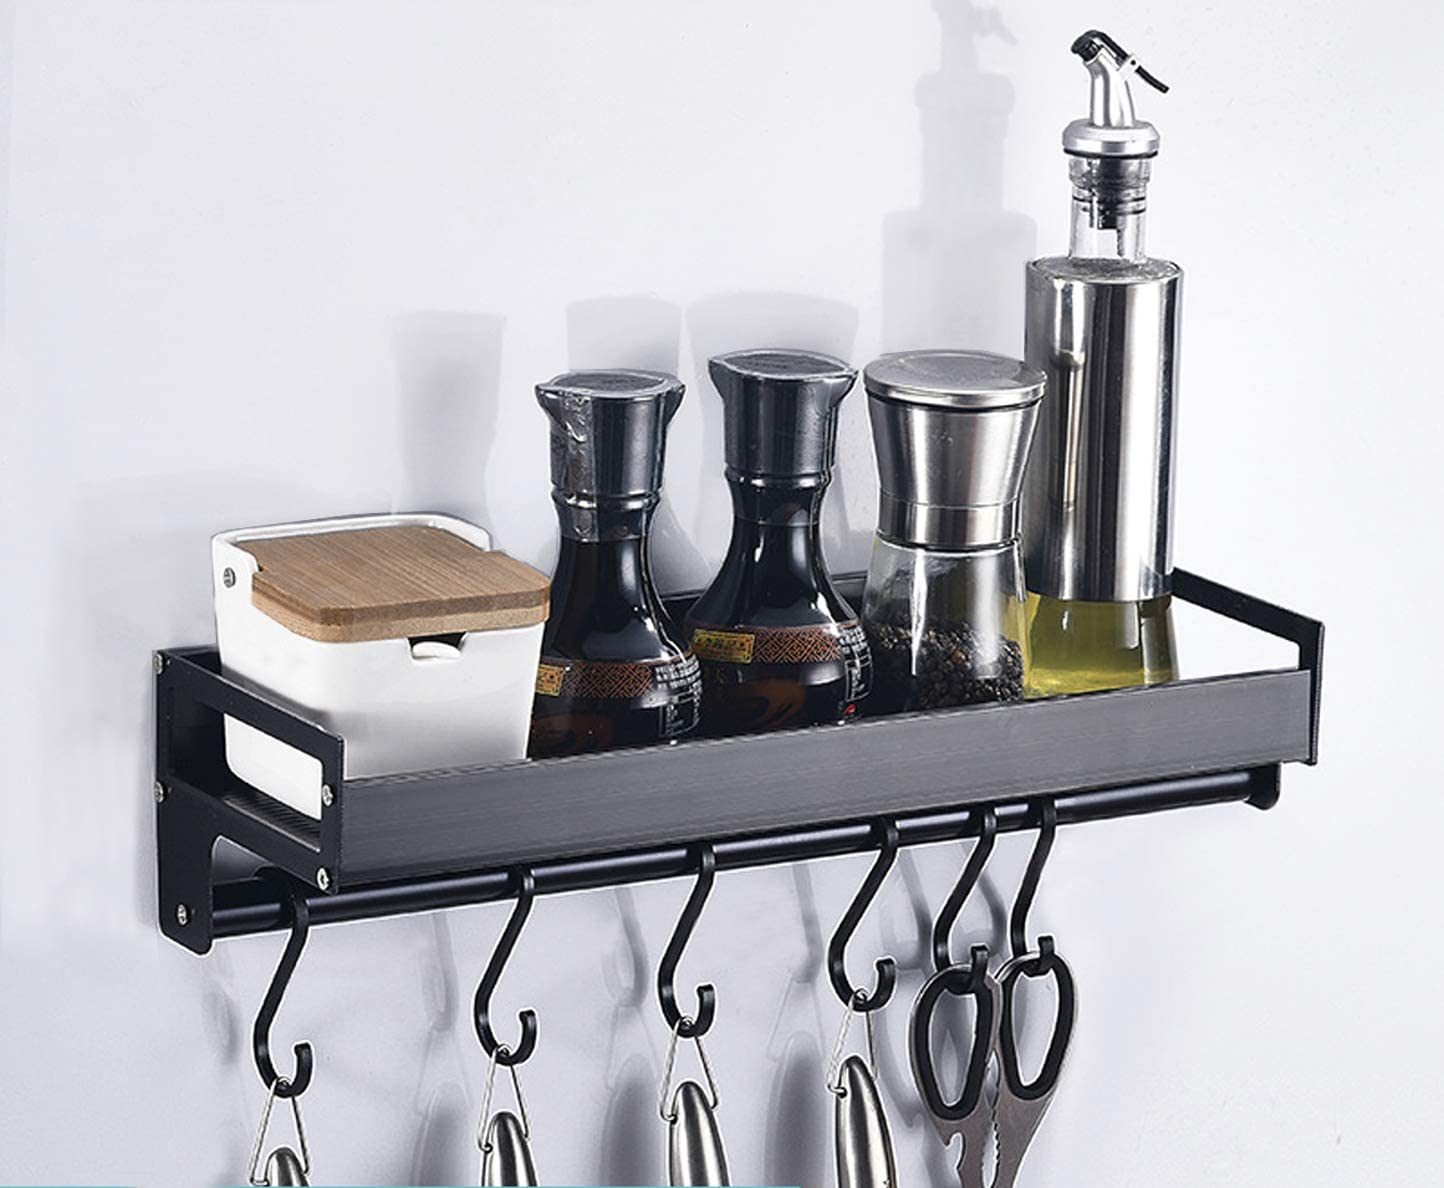 New Stainless Steel Wall Mount Shelf with Hooks spice rack Kitchen Commercial..